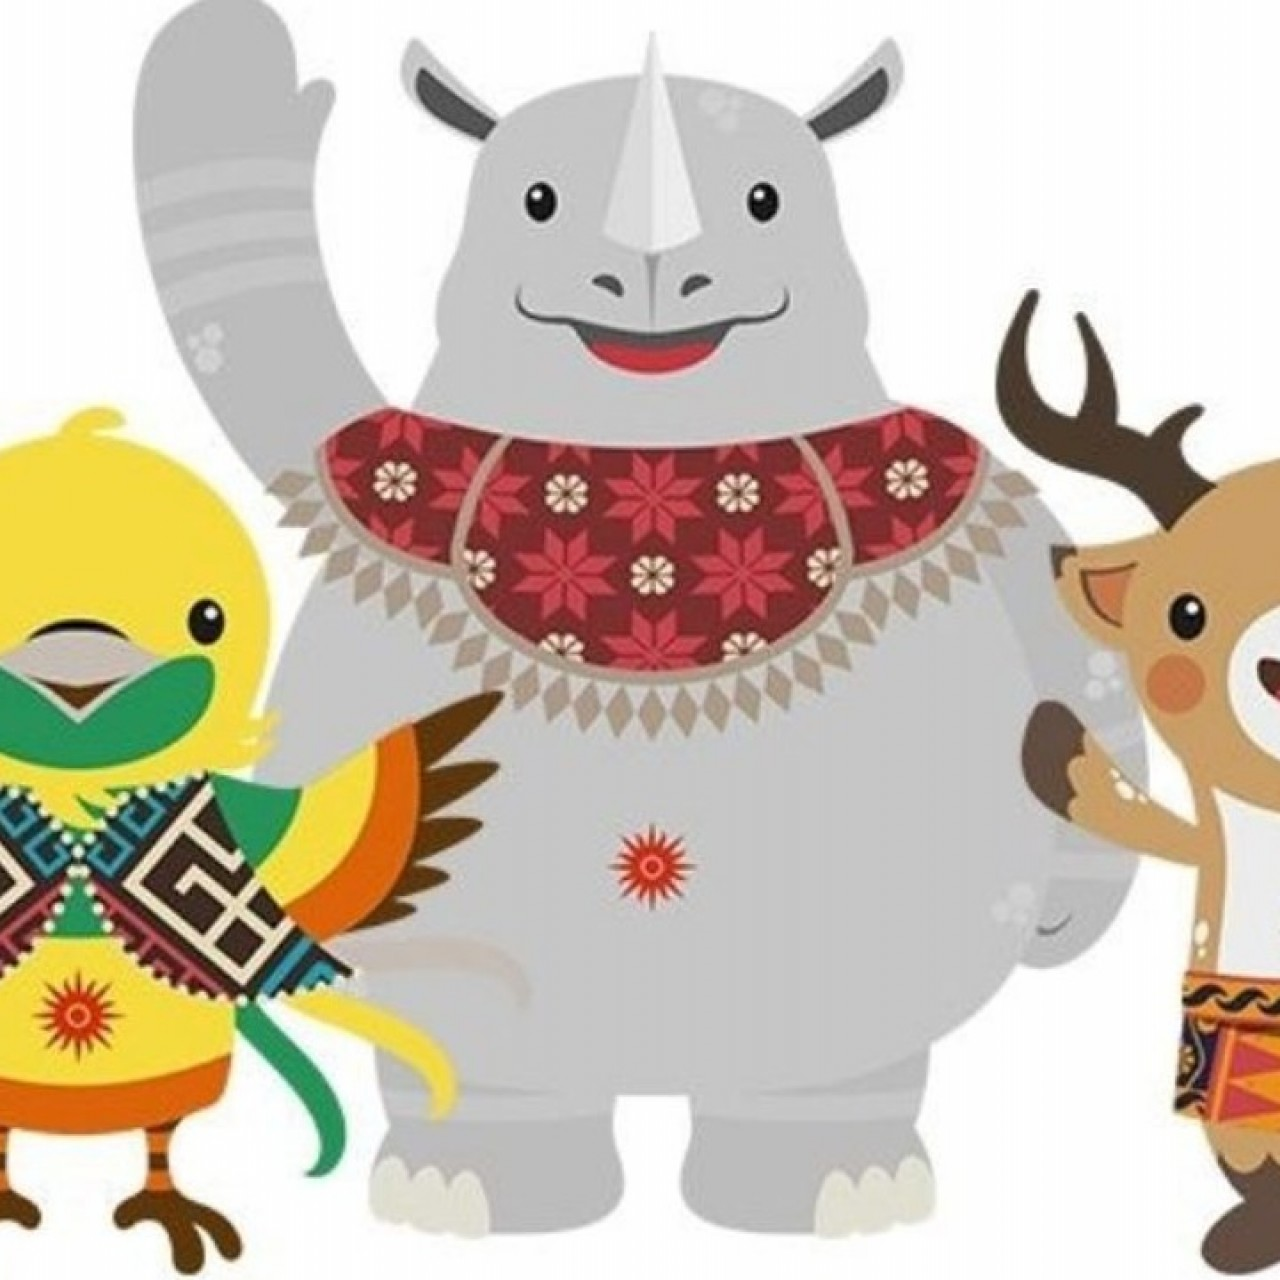 Logo asian games 2018 clipart jpg transparent library Asian Games mascots: how does 2018 trio of Bhin Bhin, Atung and Kaka ... jpg transparent library